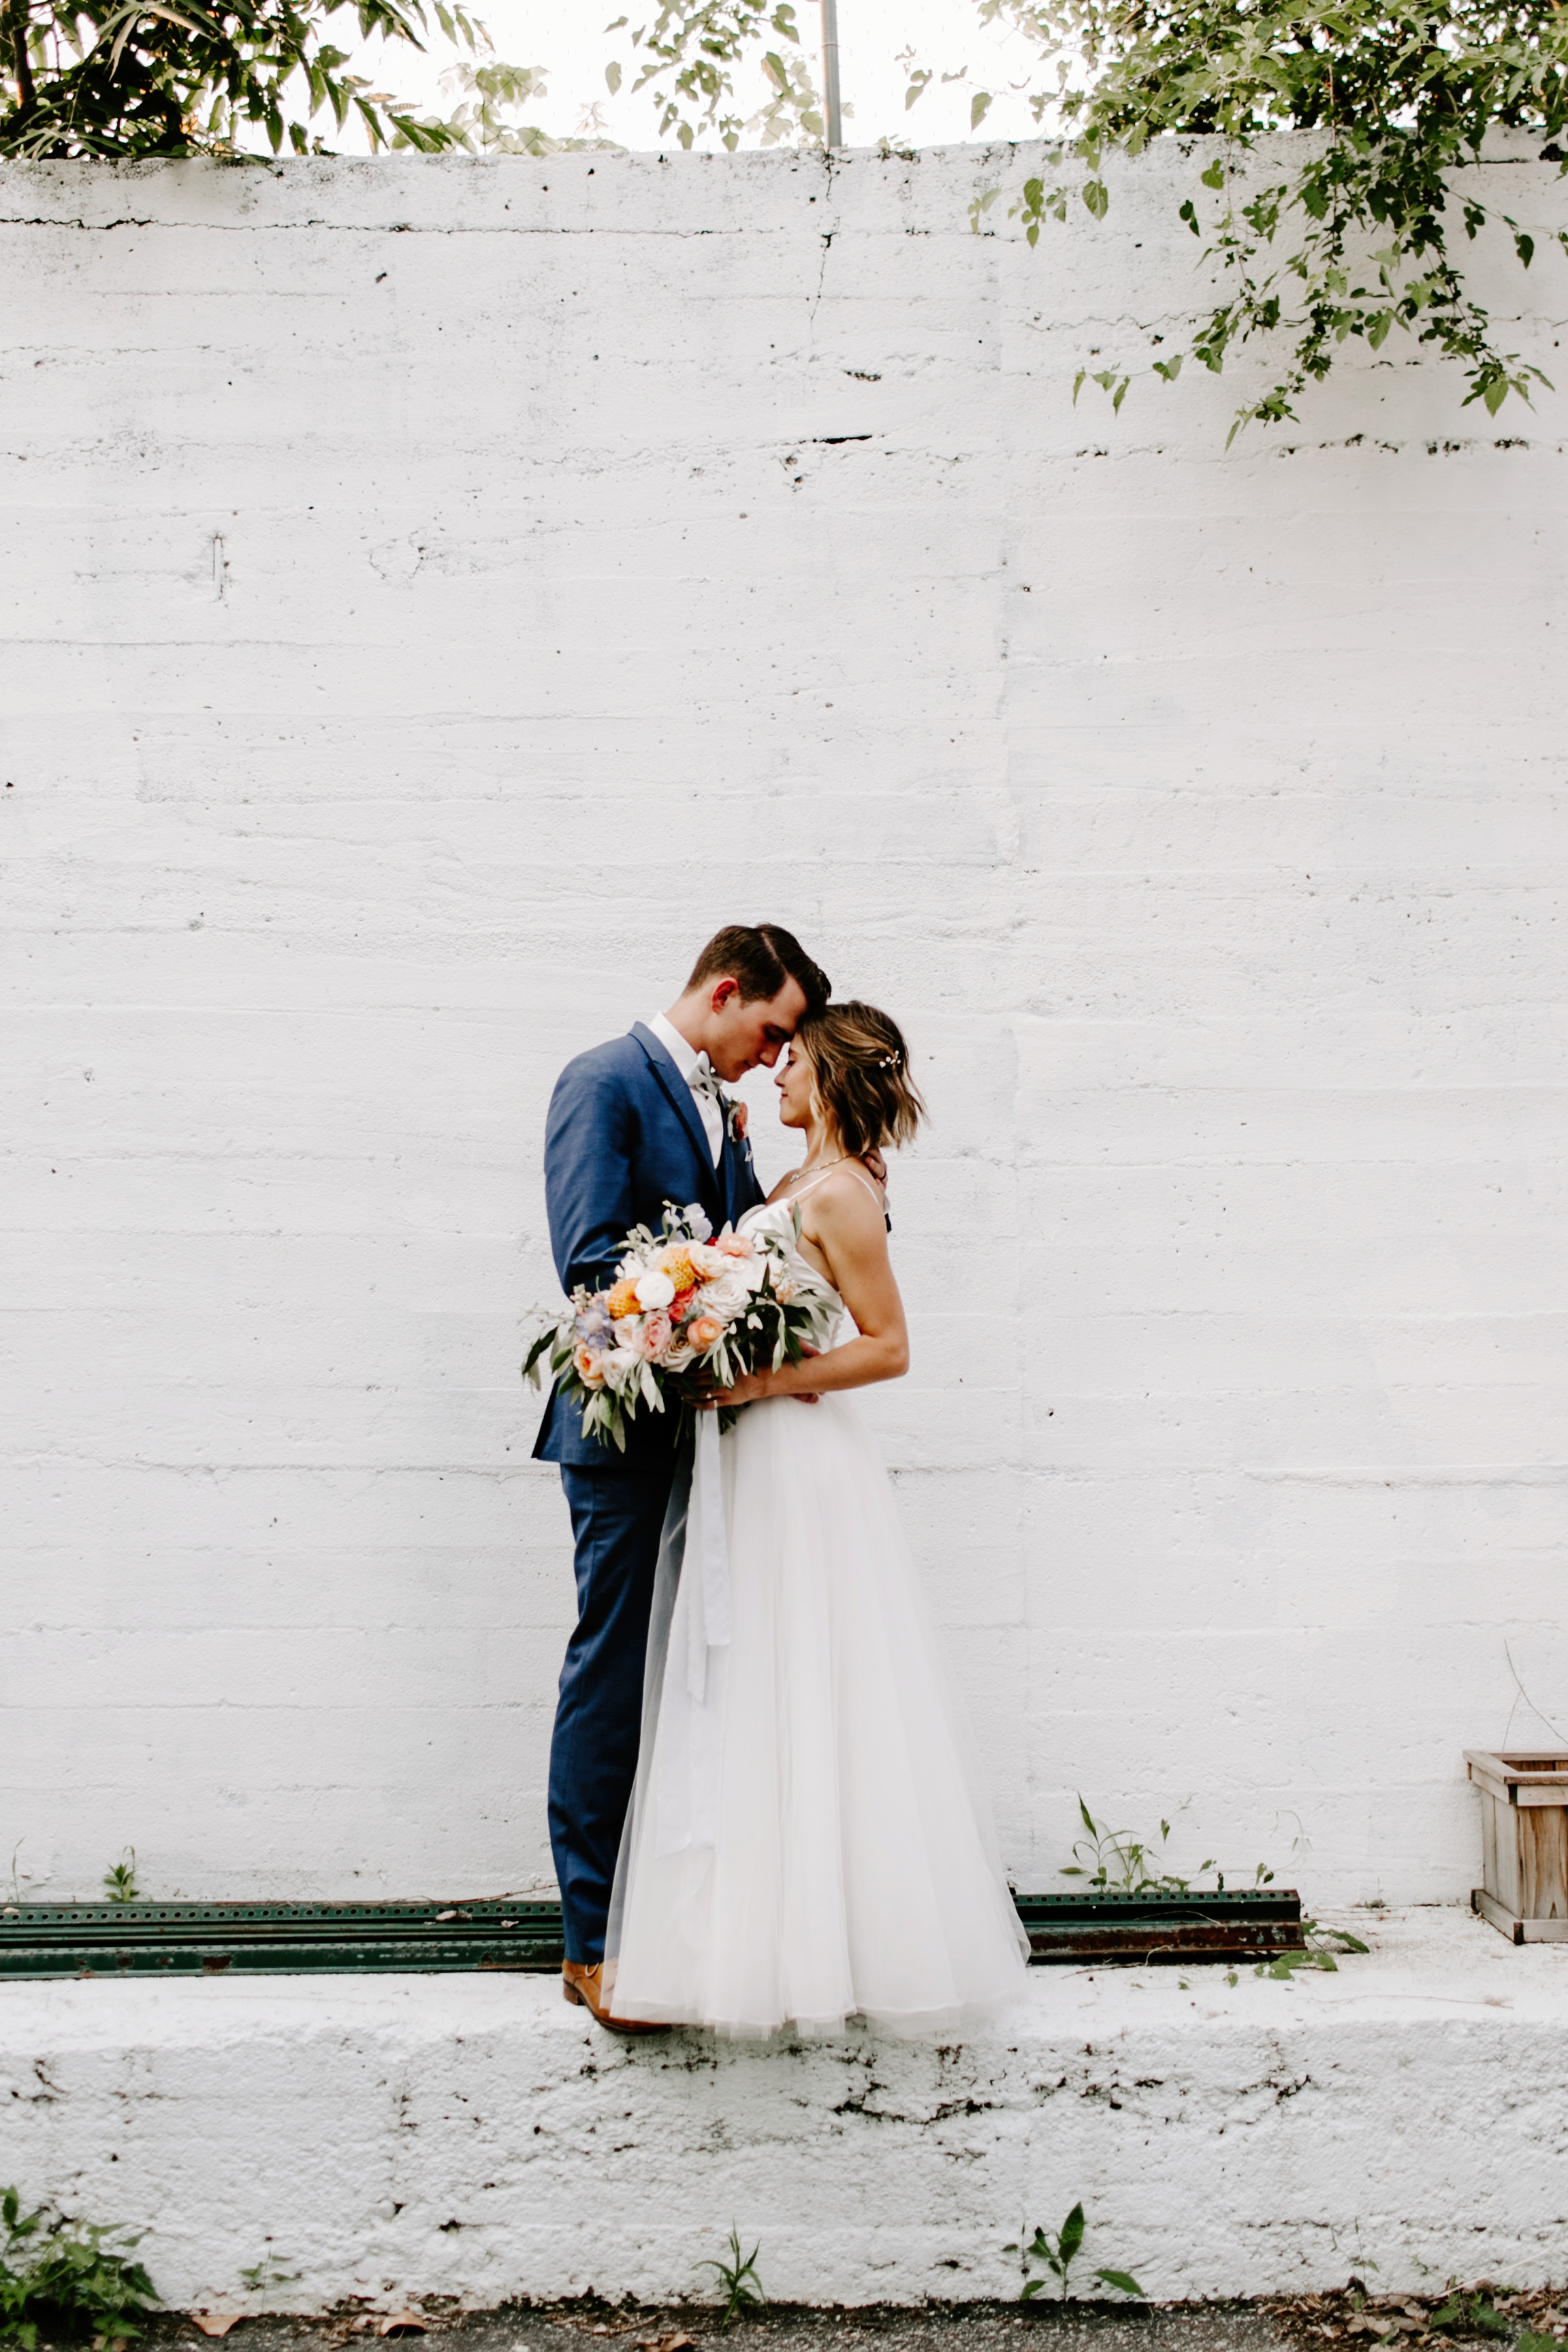 Claire_and_James_Indianapolis_Wedding_The_Tube_Factory_Emily_Elyse_Wehner_Photography_LLC-603.jpg